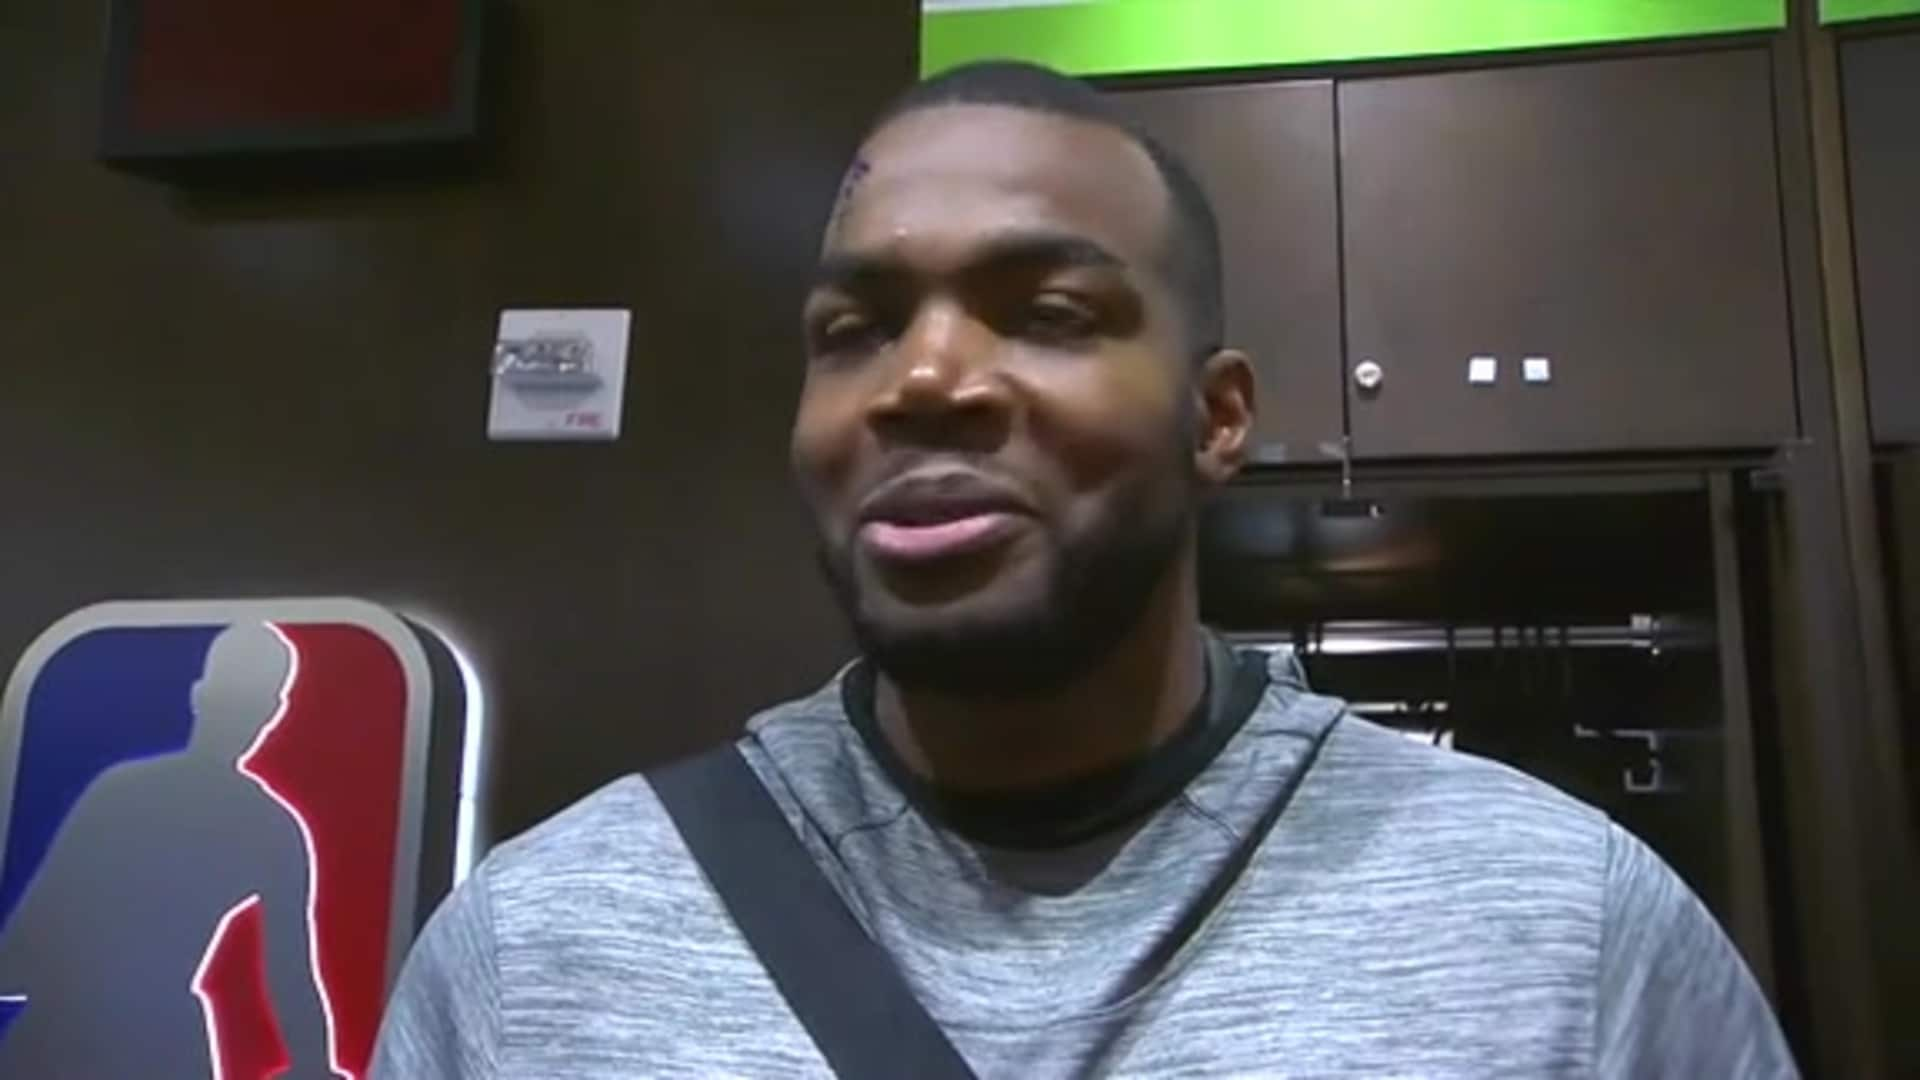 Nuggets vs. Timberwolves: Paul Millsap postgame interview